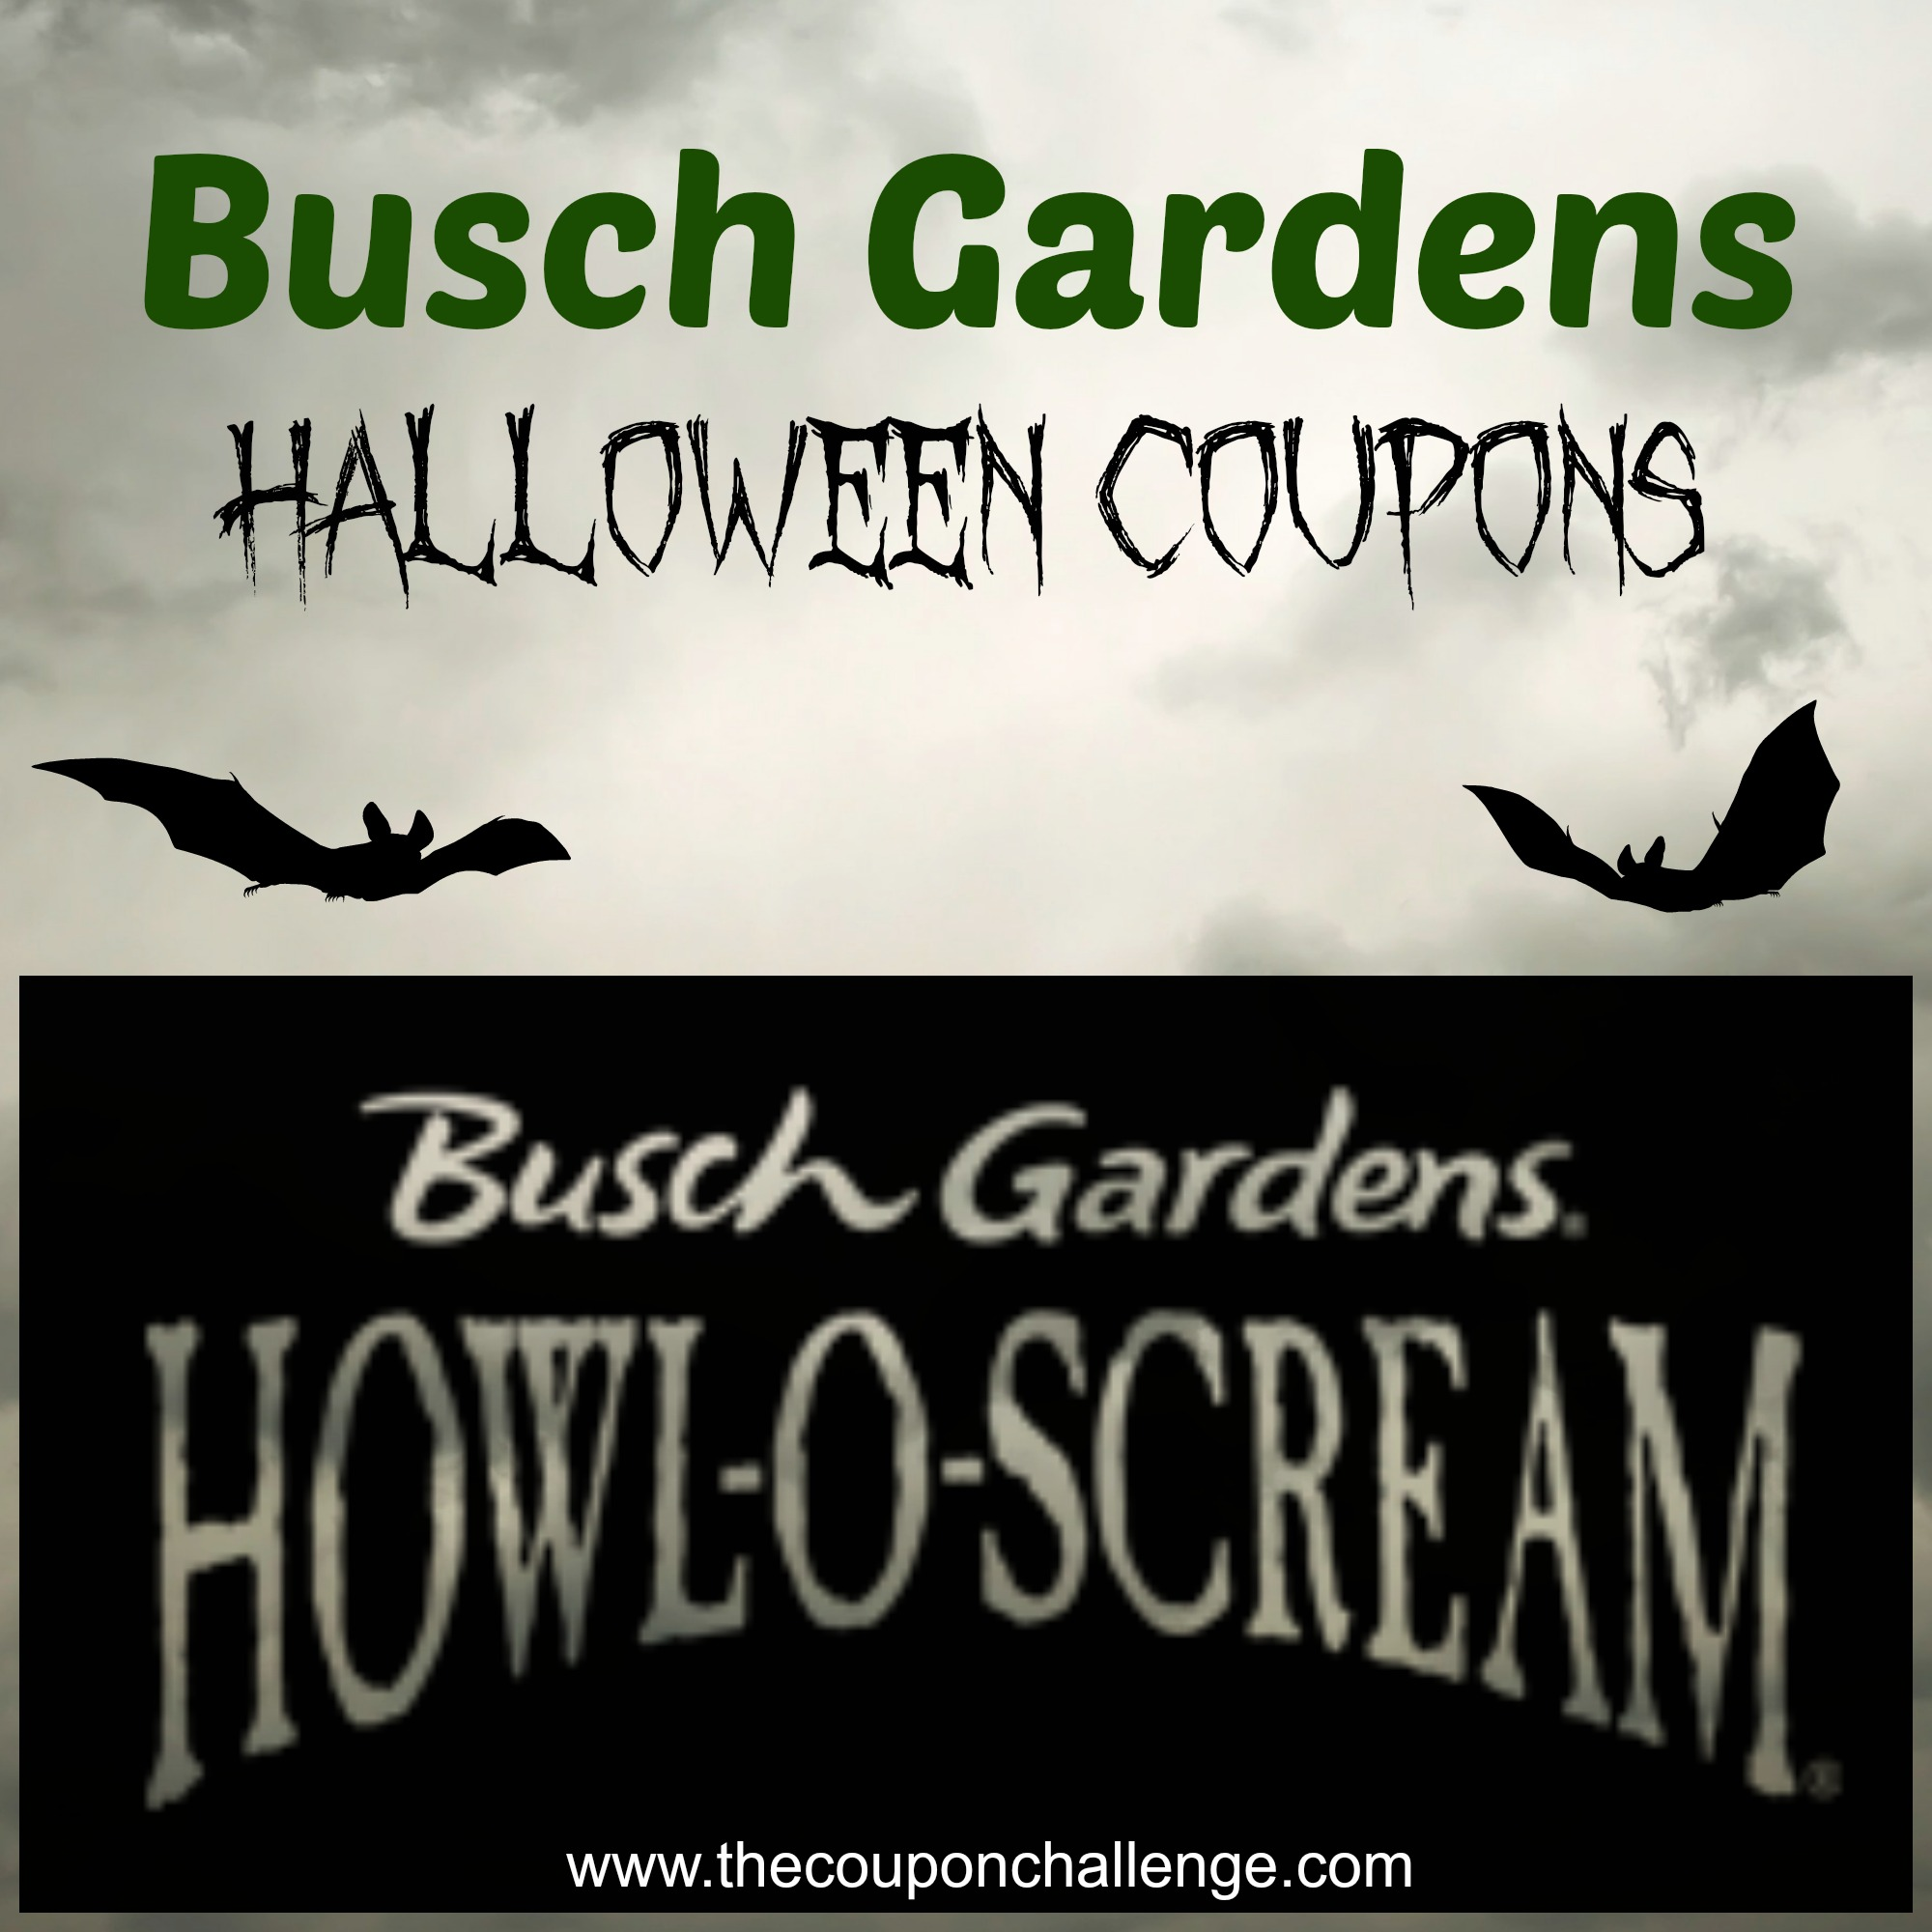 Busch gardens promo codes get 20 off coupons april 2017 Busch gardens promo code 2017